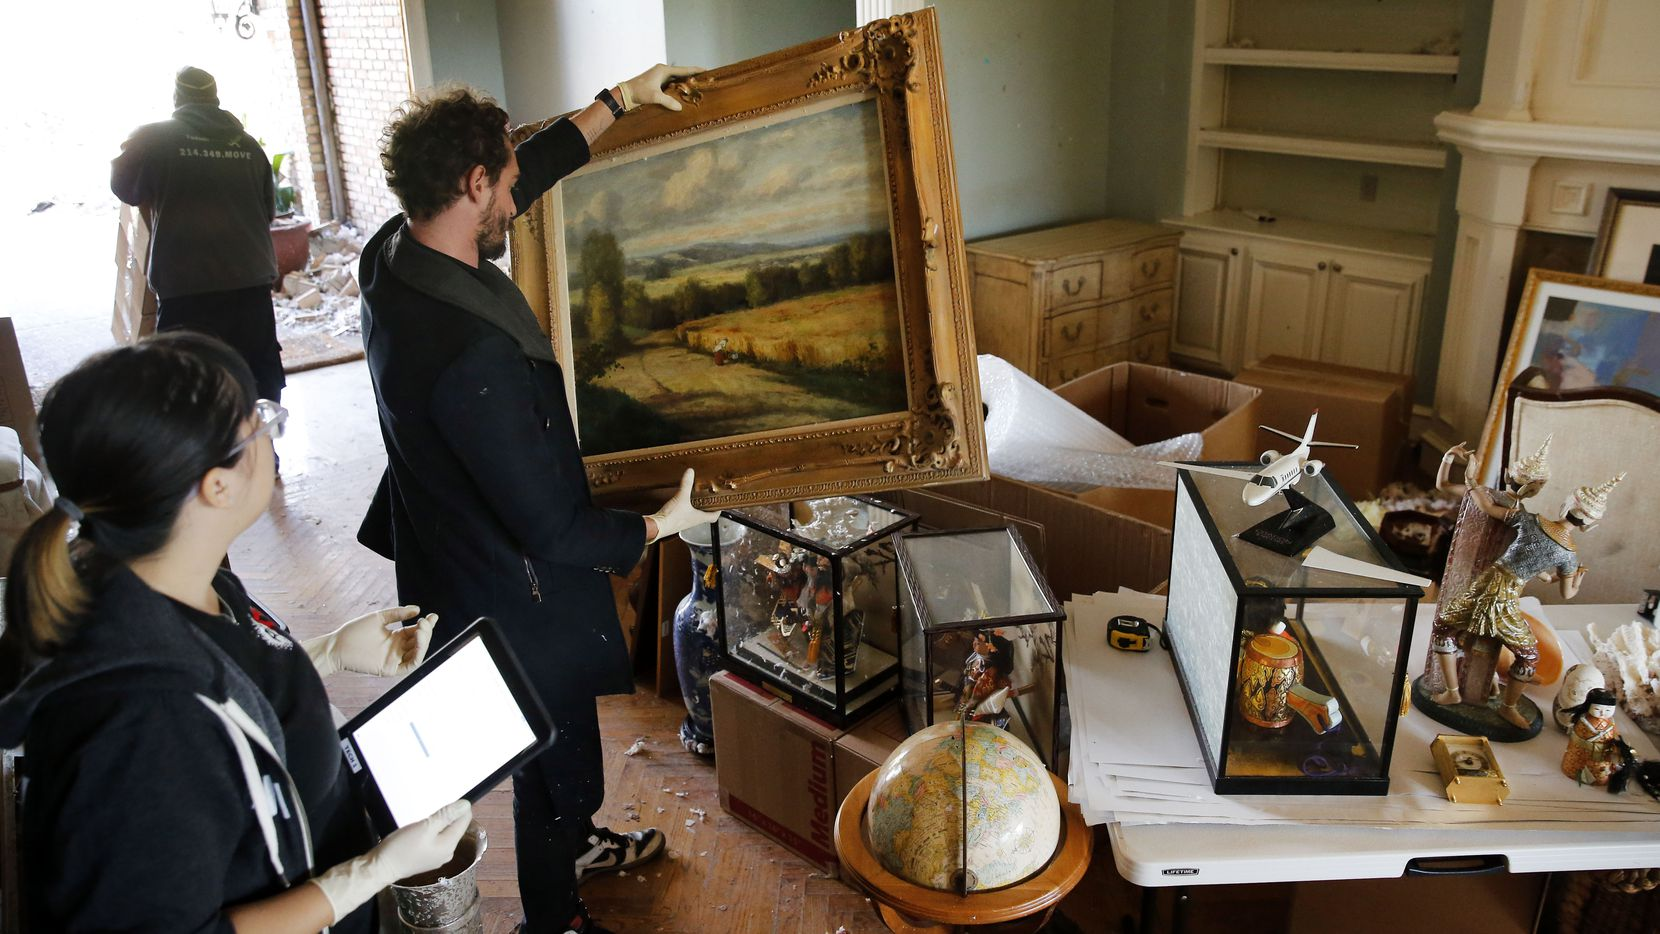 Joshua von Ammon of Art of Dallas-Fort Worth, an art recovery and restoration company, views an undamaged landscape painting in Brenda Schneider's Preston Hollow home in Dallas on Tuesday, Oct. 22, 2019.